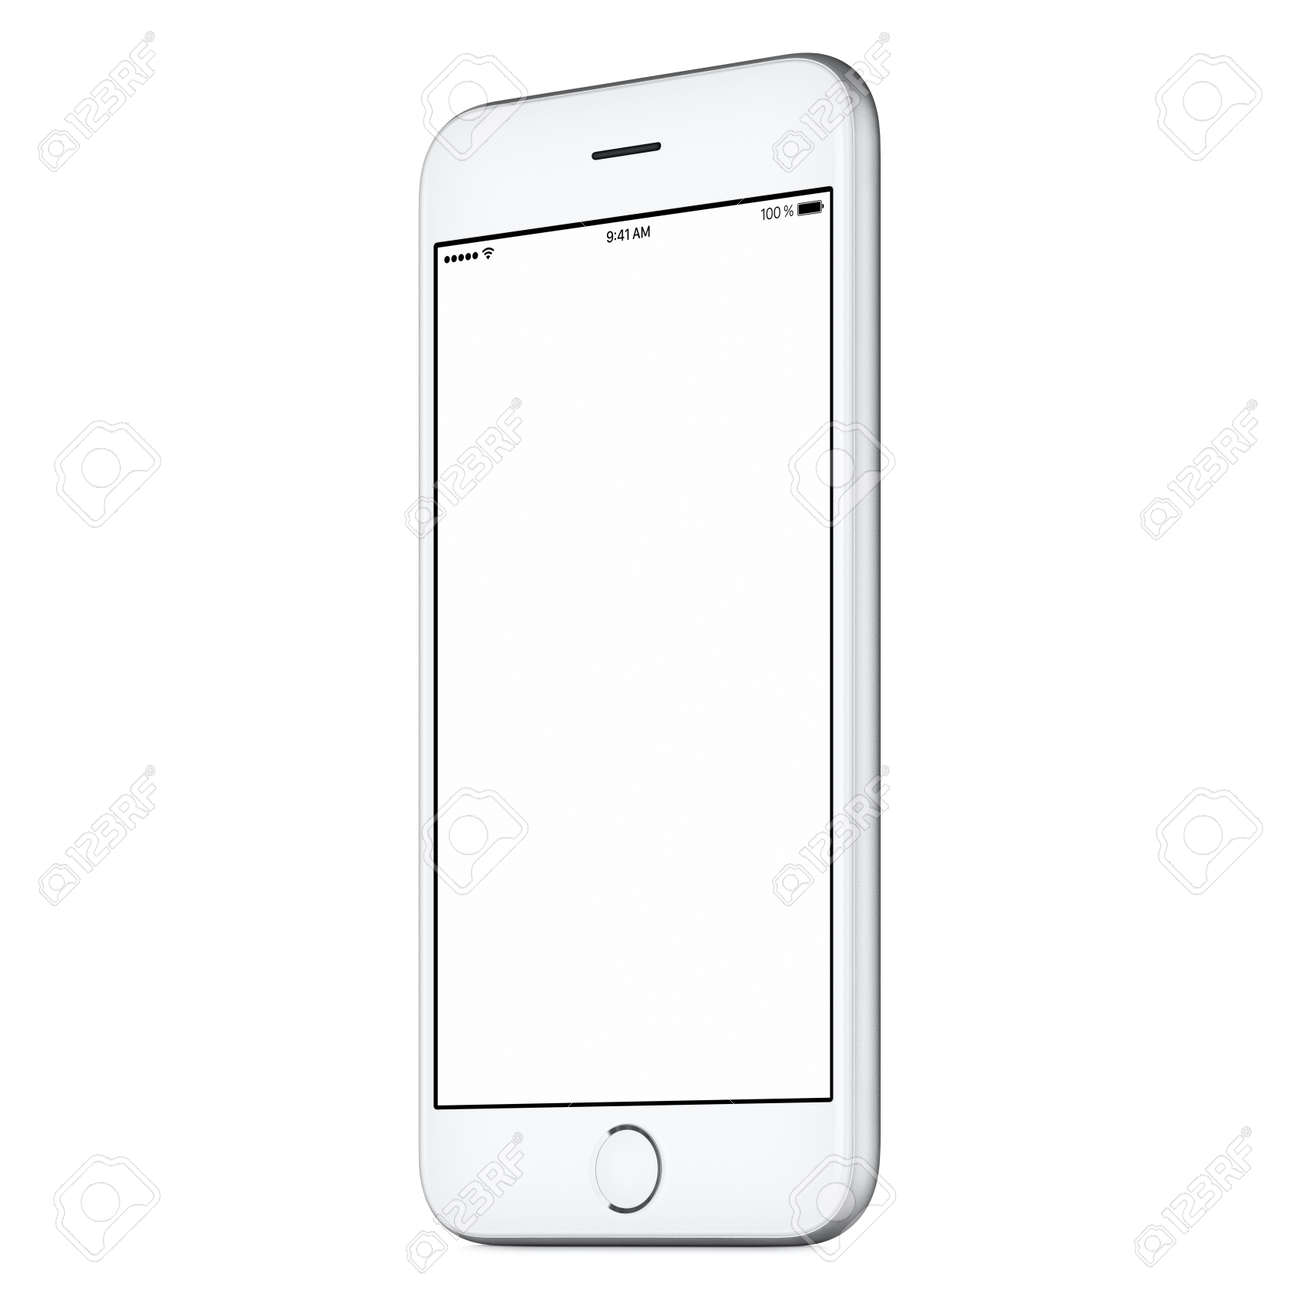 White mobile smart phone mockup slightly clockwise rotated with blank screen isolated on white background. You can use this mock-up for portfolio or UI design presentation or ad campaign. - 69839462